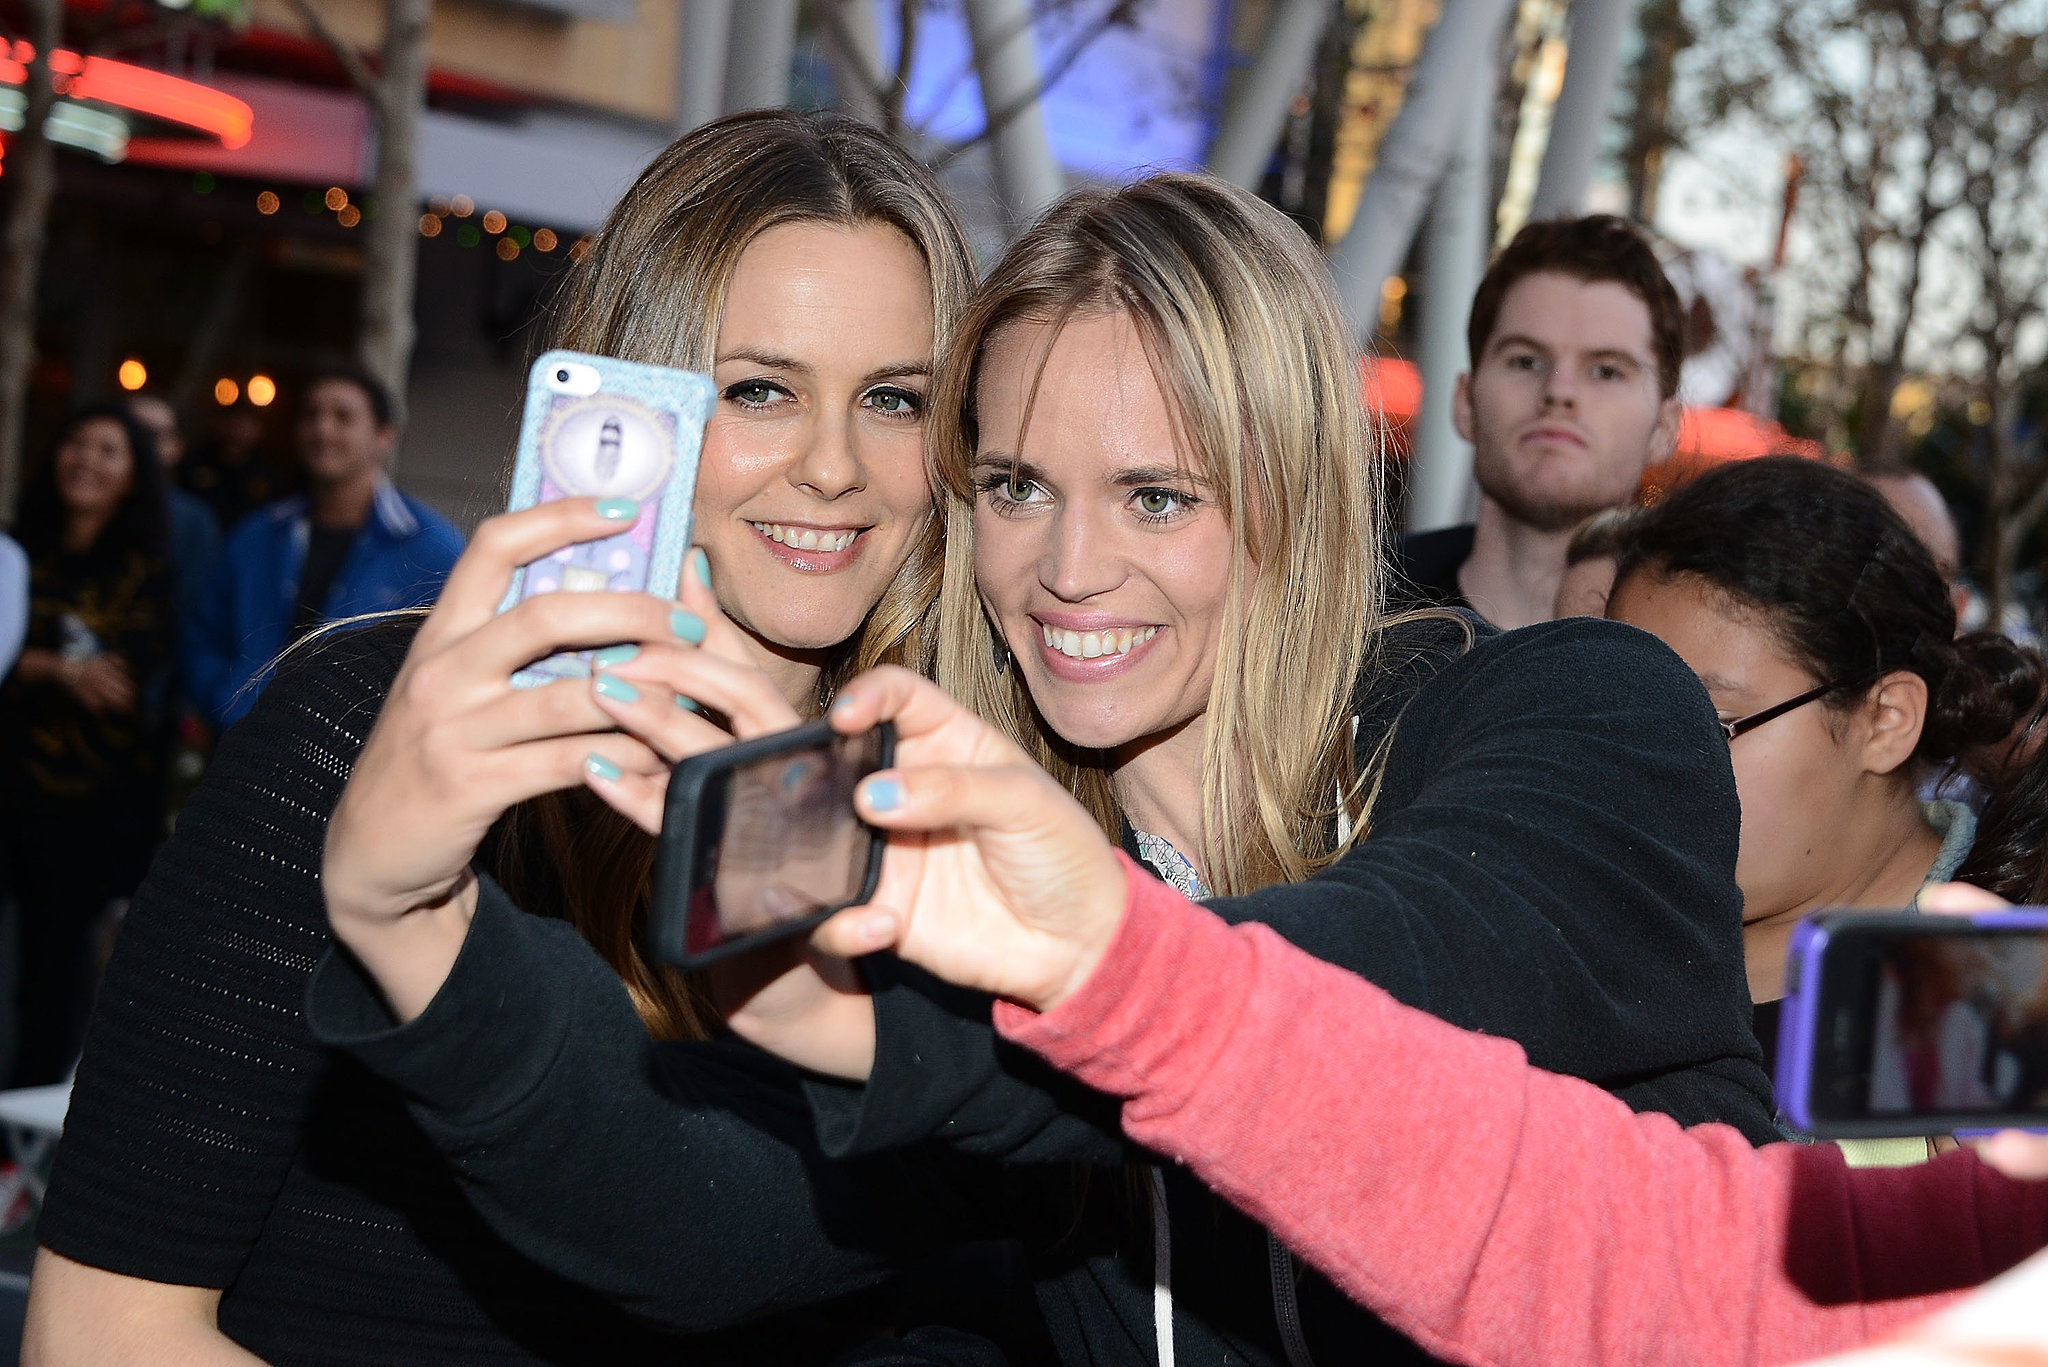 Alicia snapped a selfie with a fan.